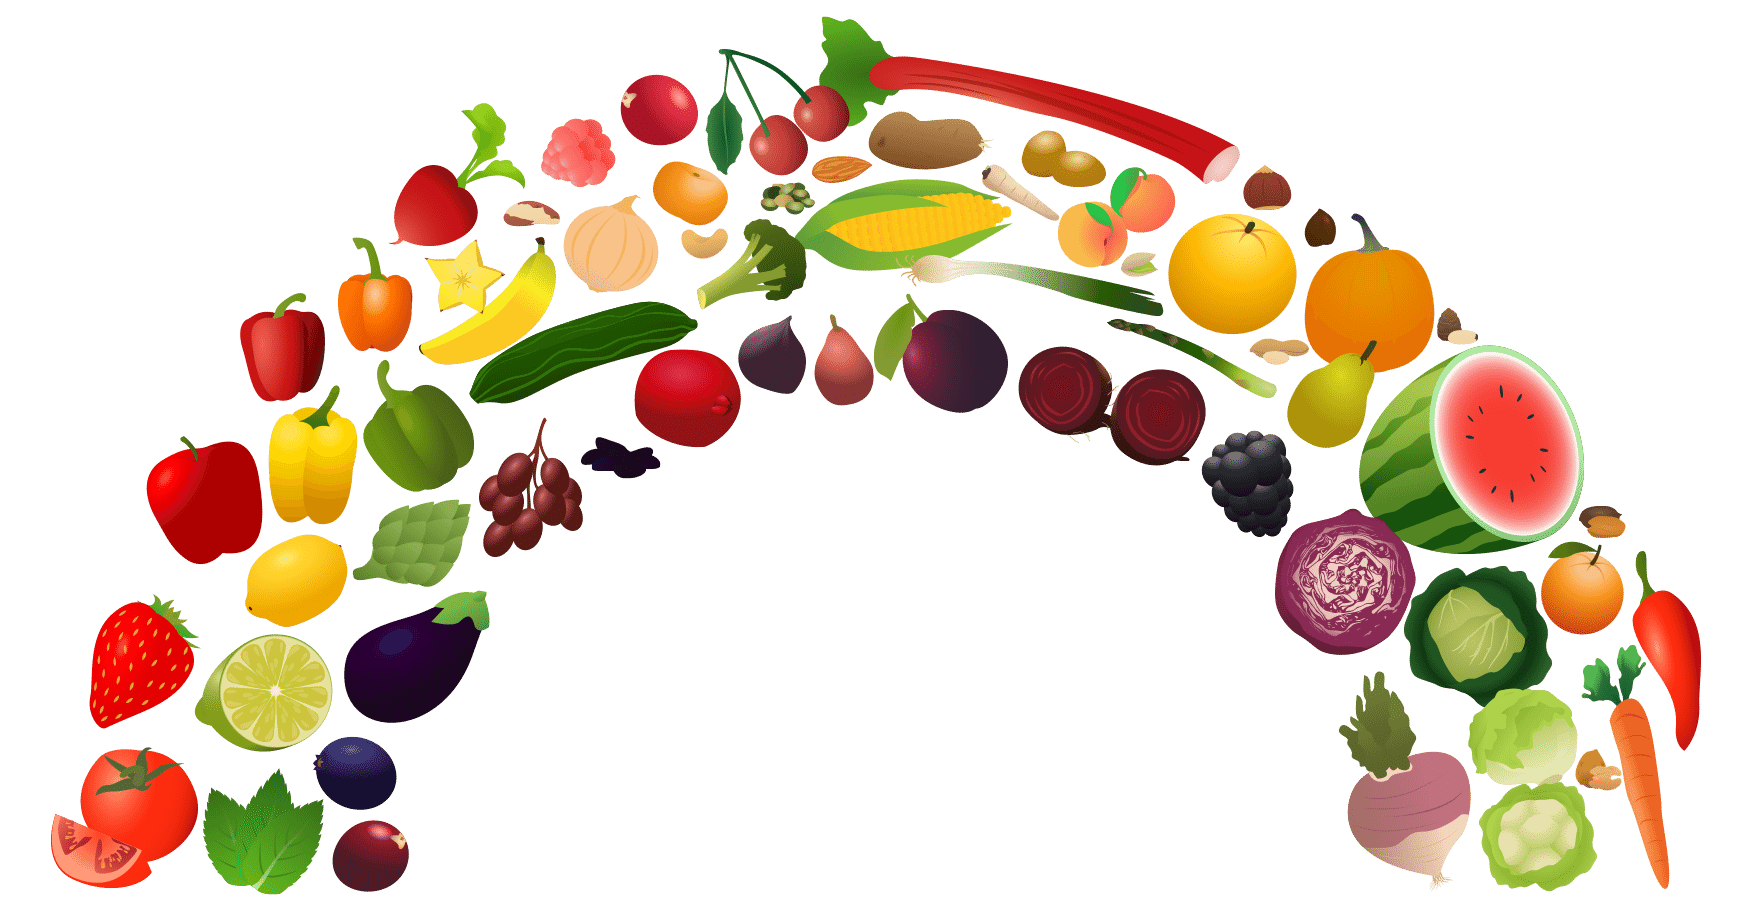 Rainbow Food Vegetable Png 2965 Free Icons And Png